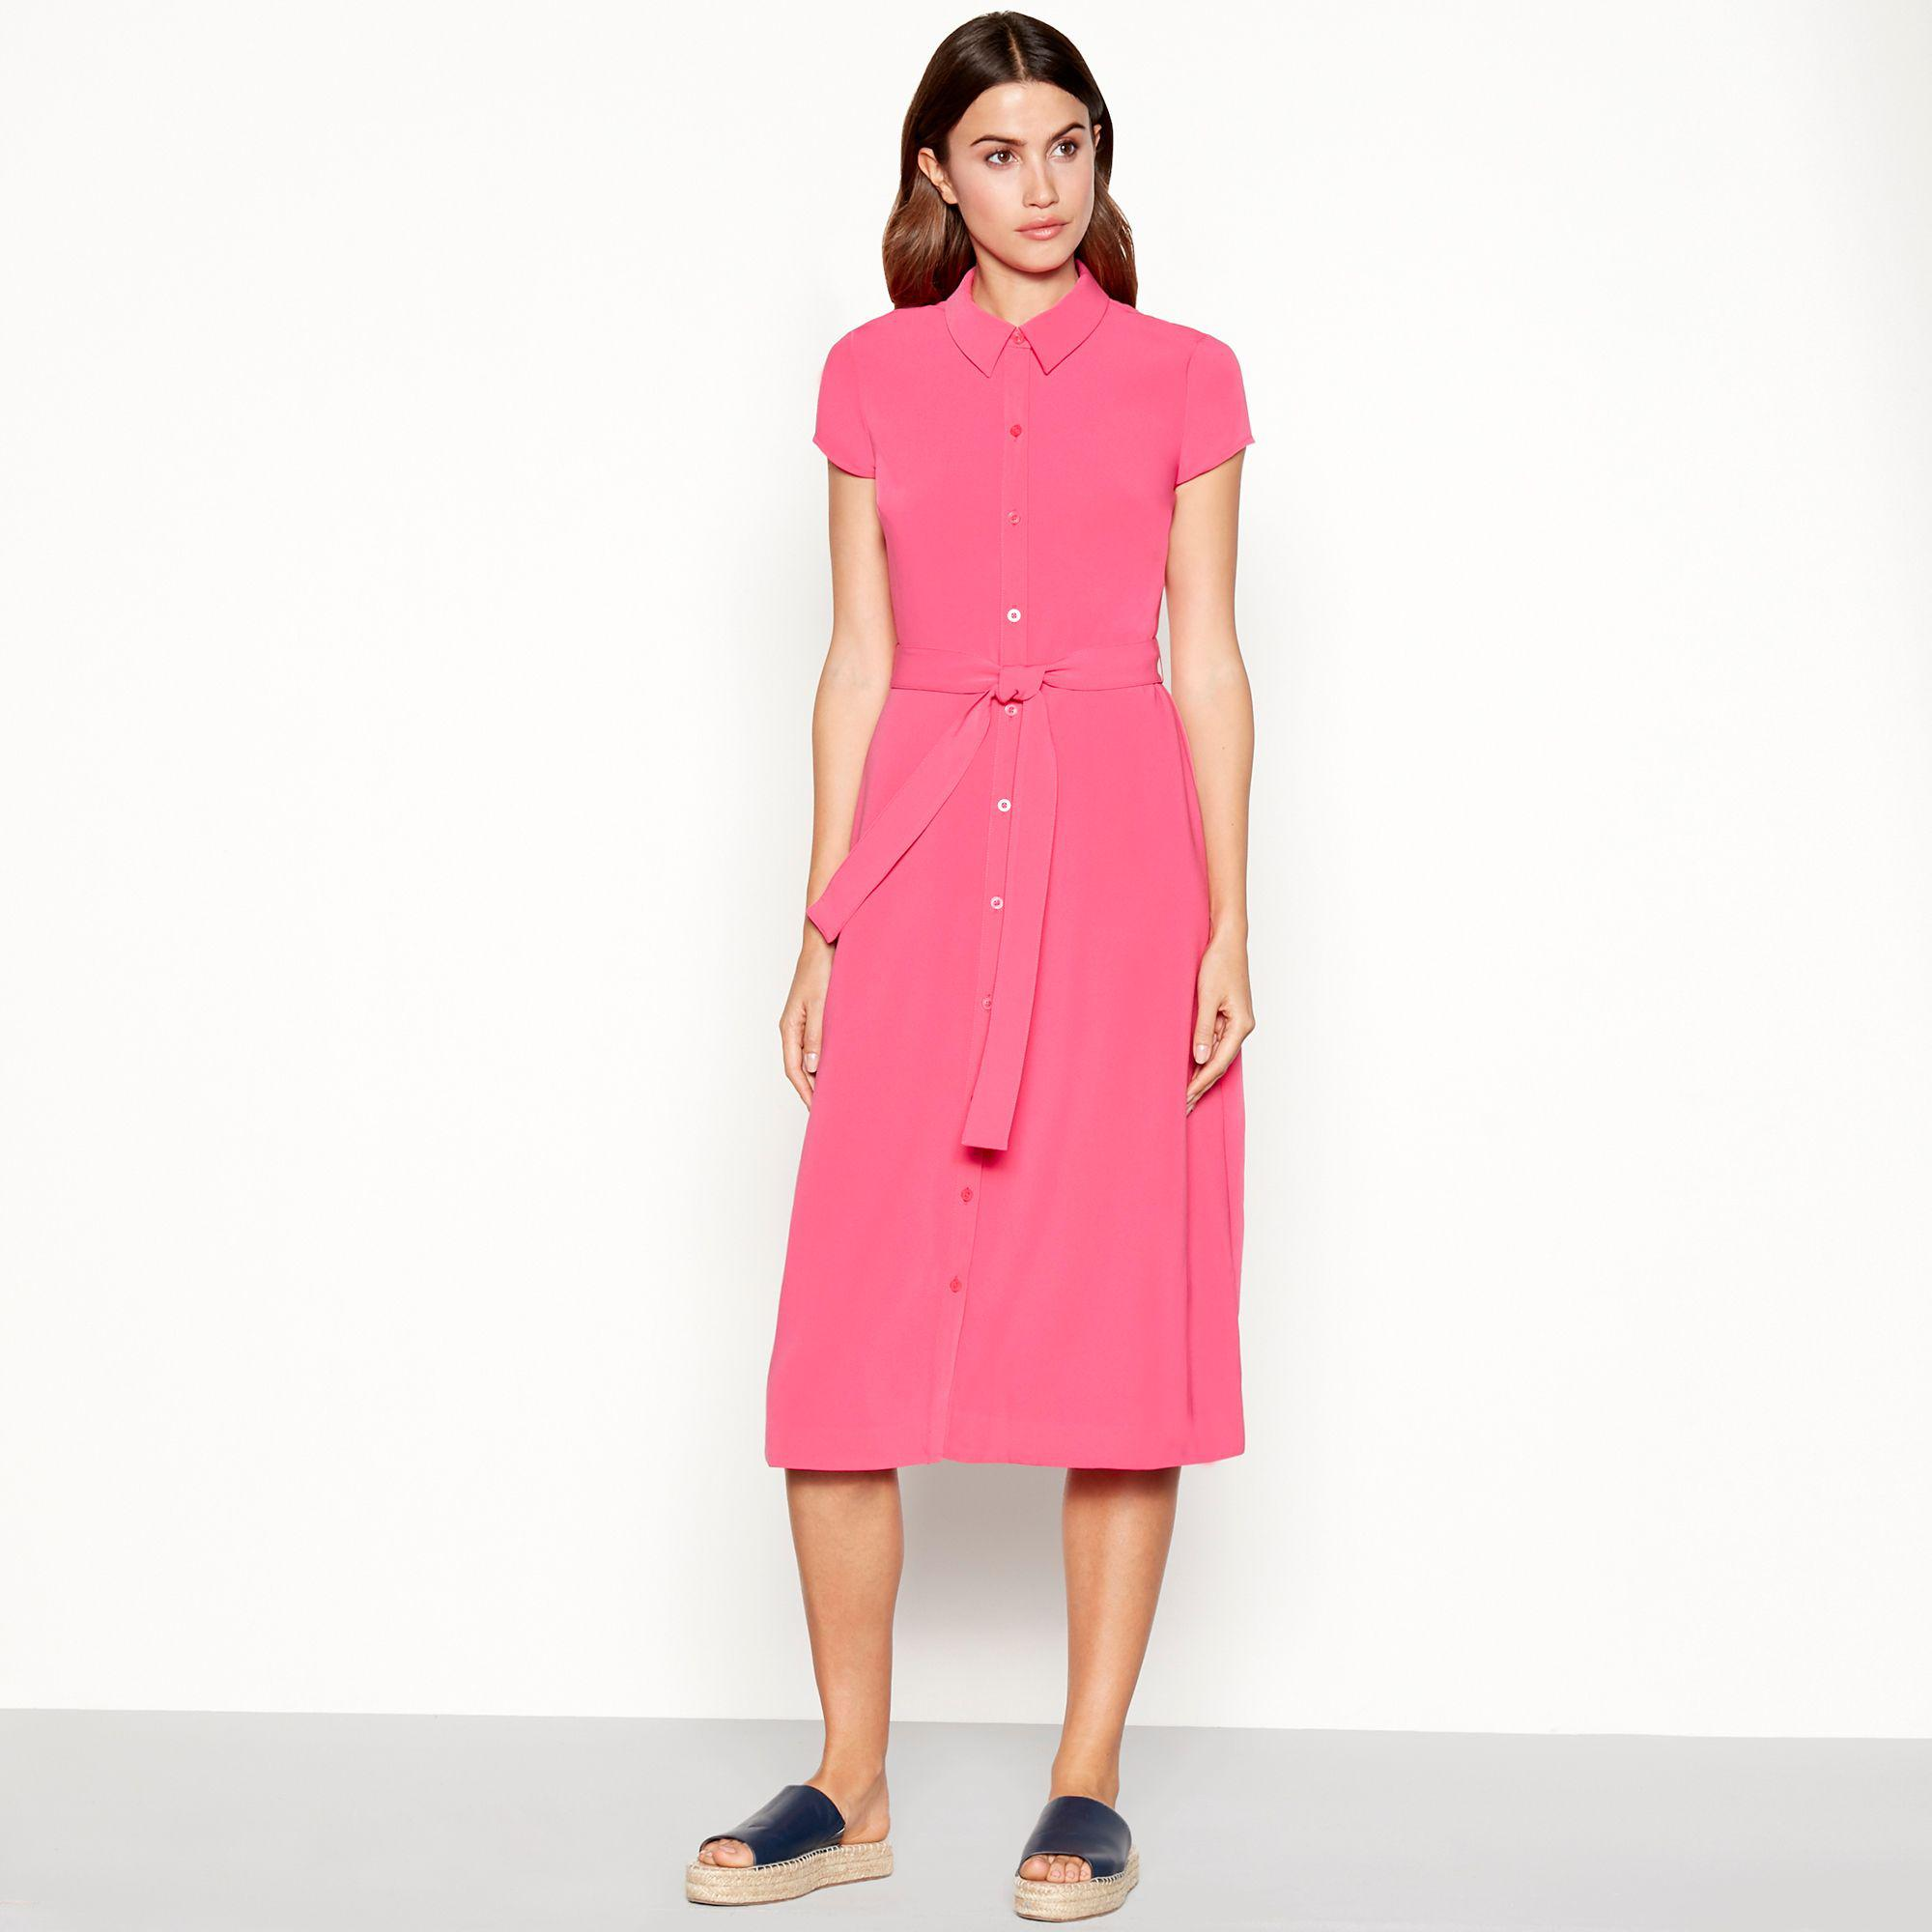 91bac65fc021 J By Jasper Conran Pink Shirt Midi Dress in Pink - Lyst